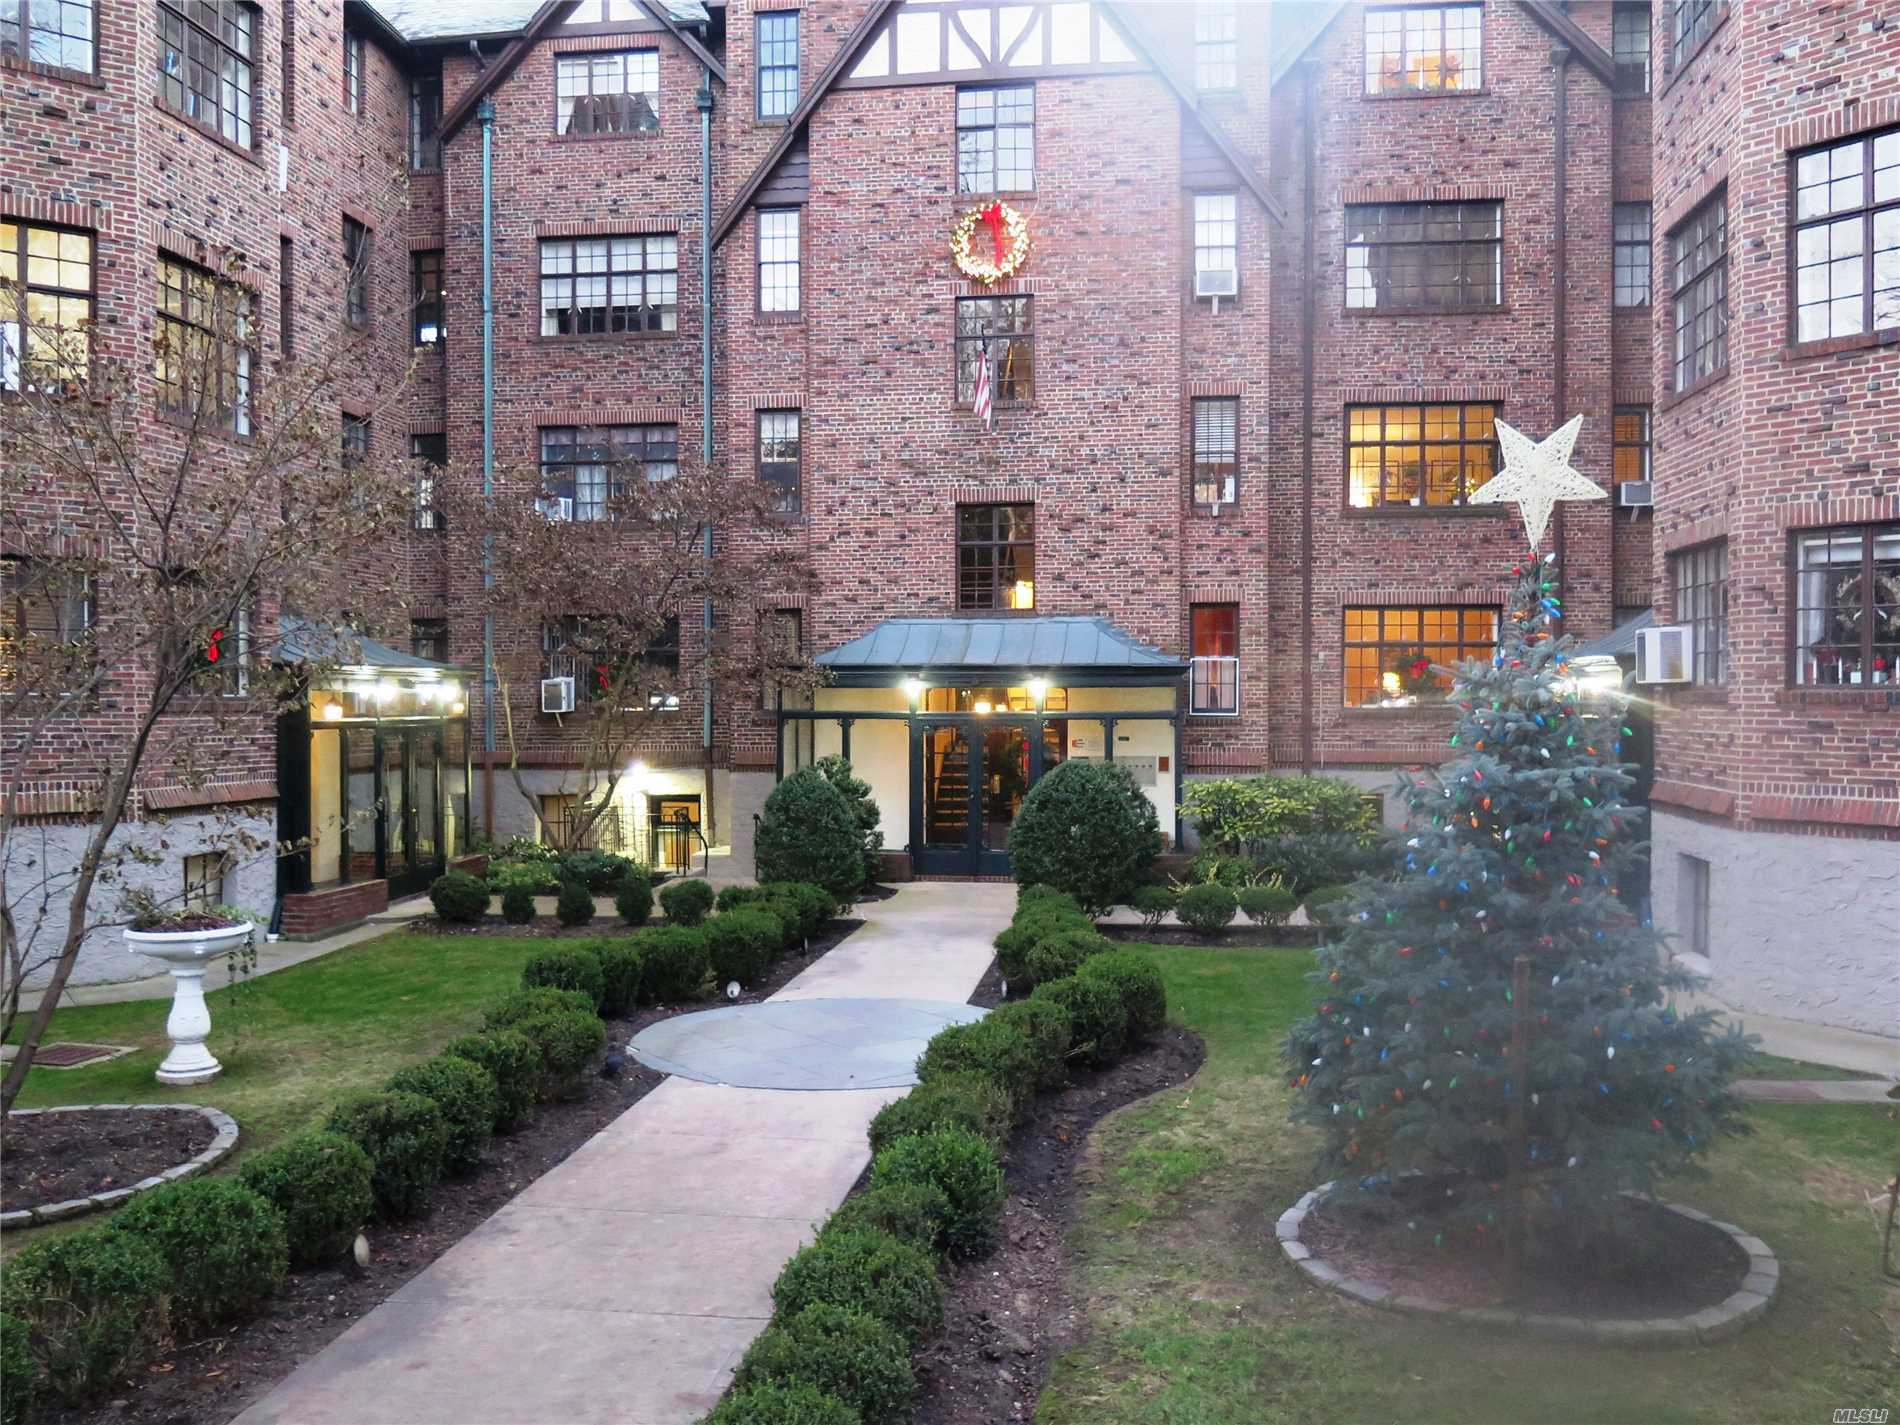 Charming 2 Bedroom Apartment With Wood Burning Fireplace In Desirable Old World Tudor Building In Douglaston. Convenient To Long Island Railroad. School District #26 - Ps 98, Ms 67, Cardozo Hs. February 15 Occupancy.